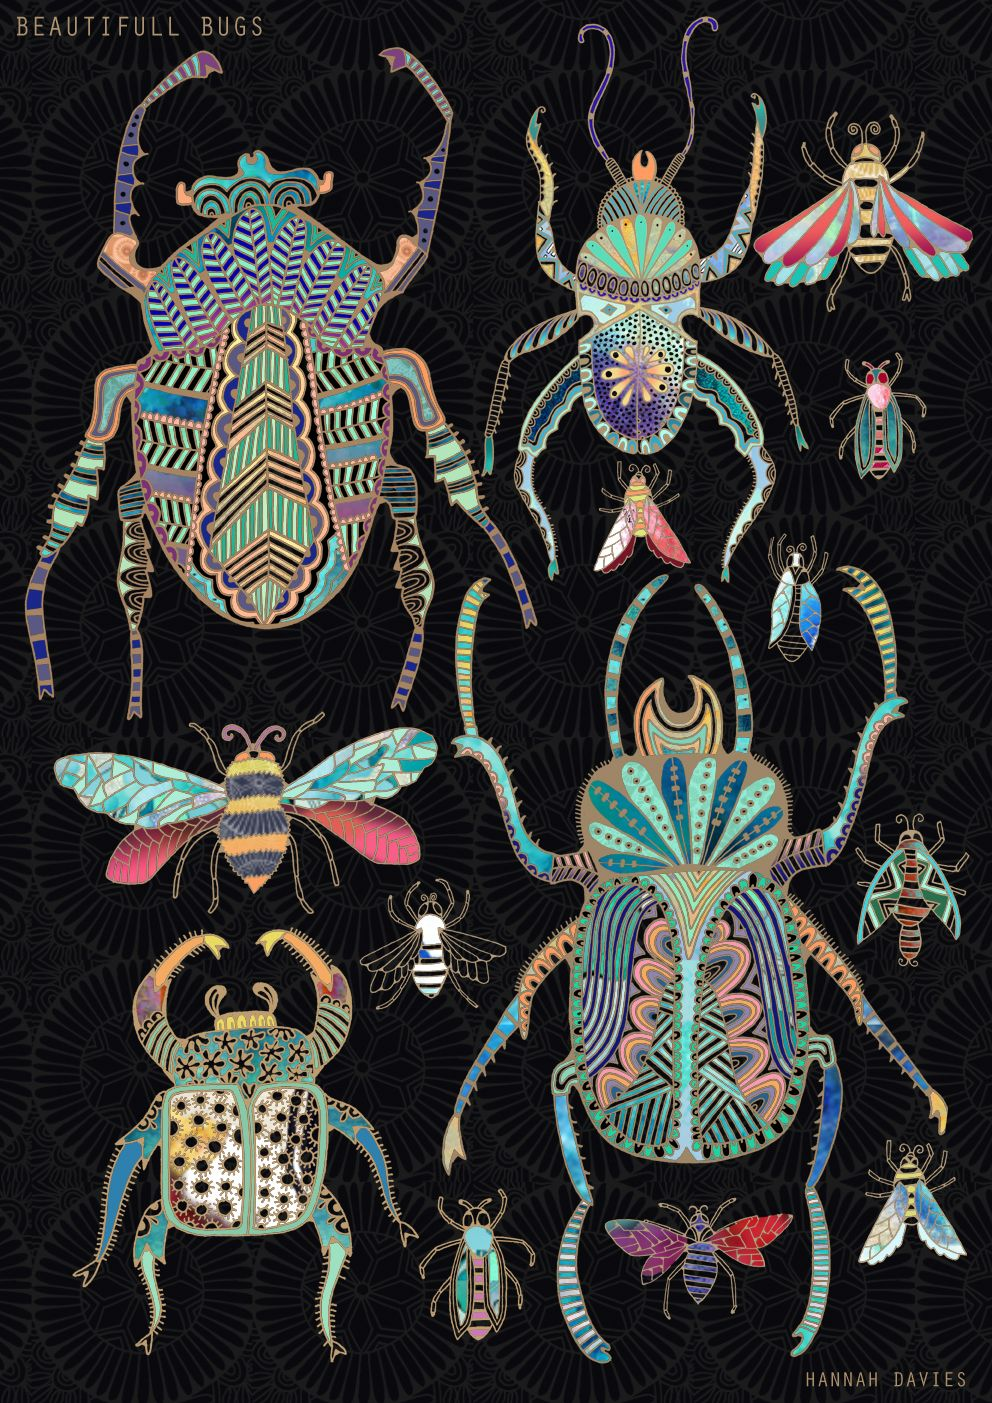 Illustrated by Hannah Davies - Bugs in gold | Chain | Pinterest ...